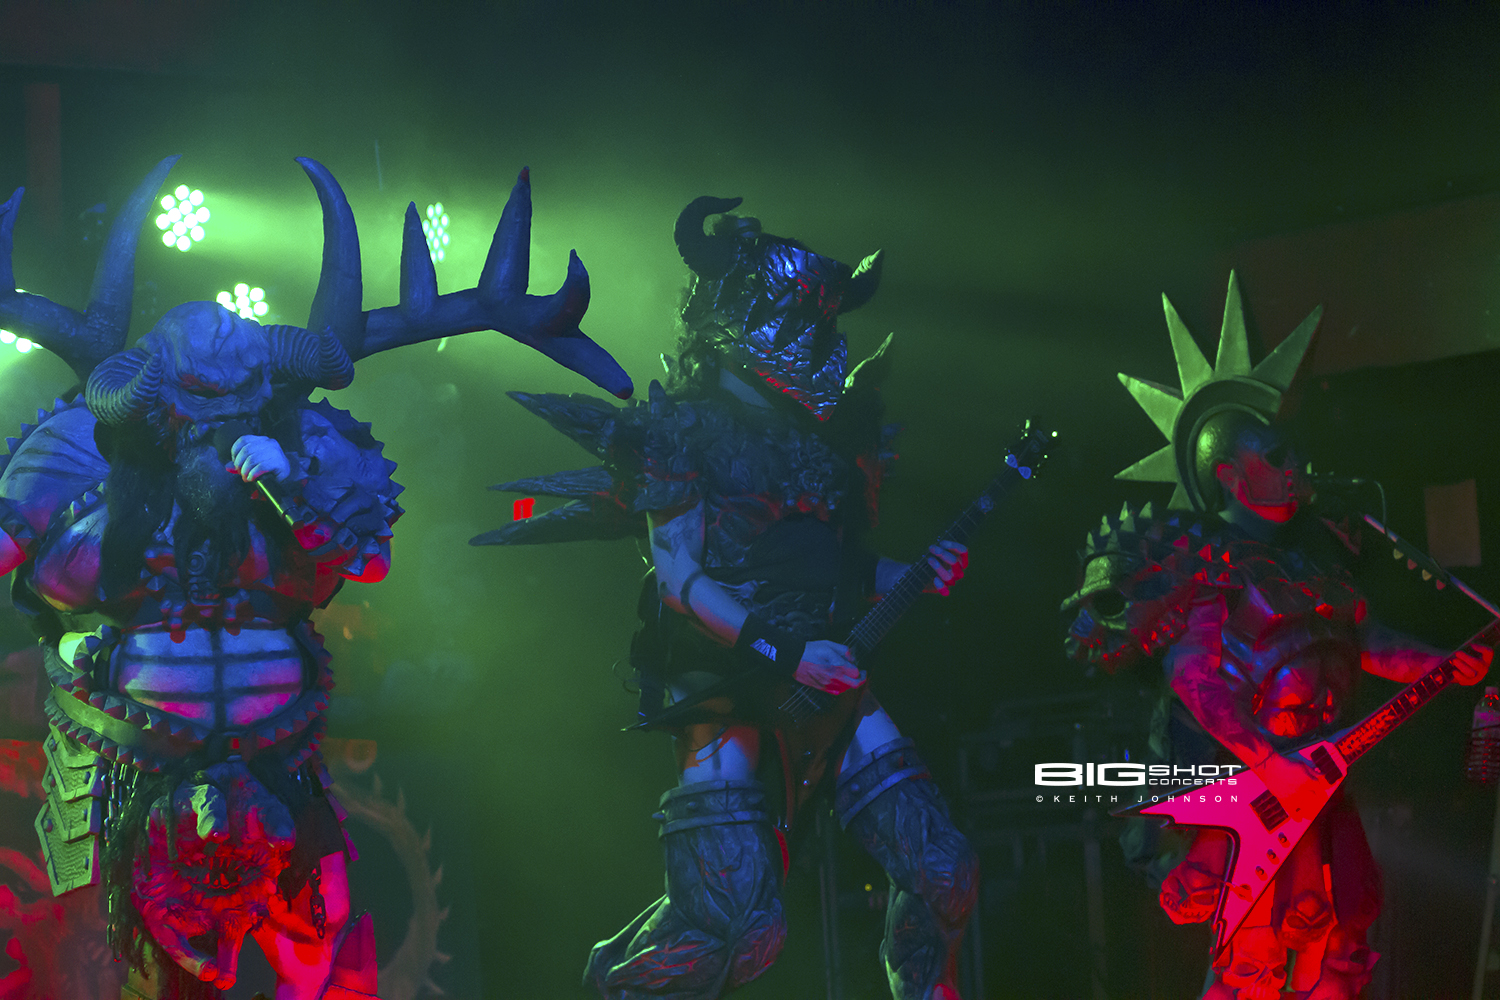 GWAR in concert at Revolution Live